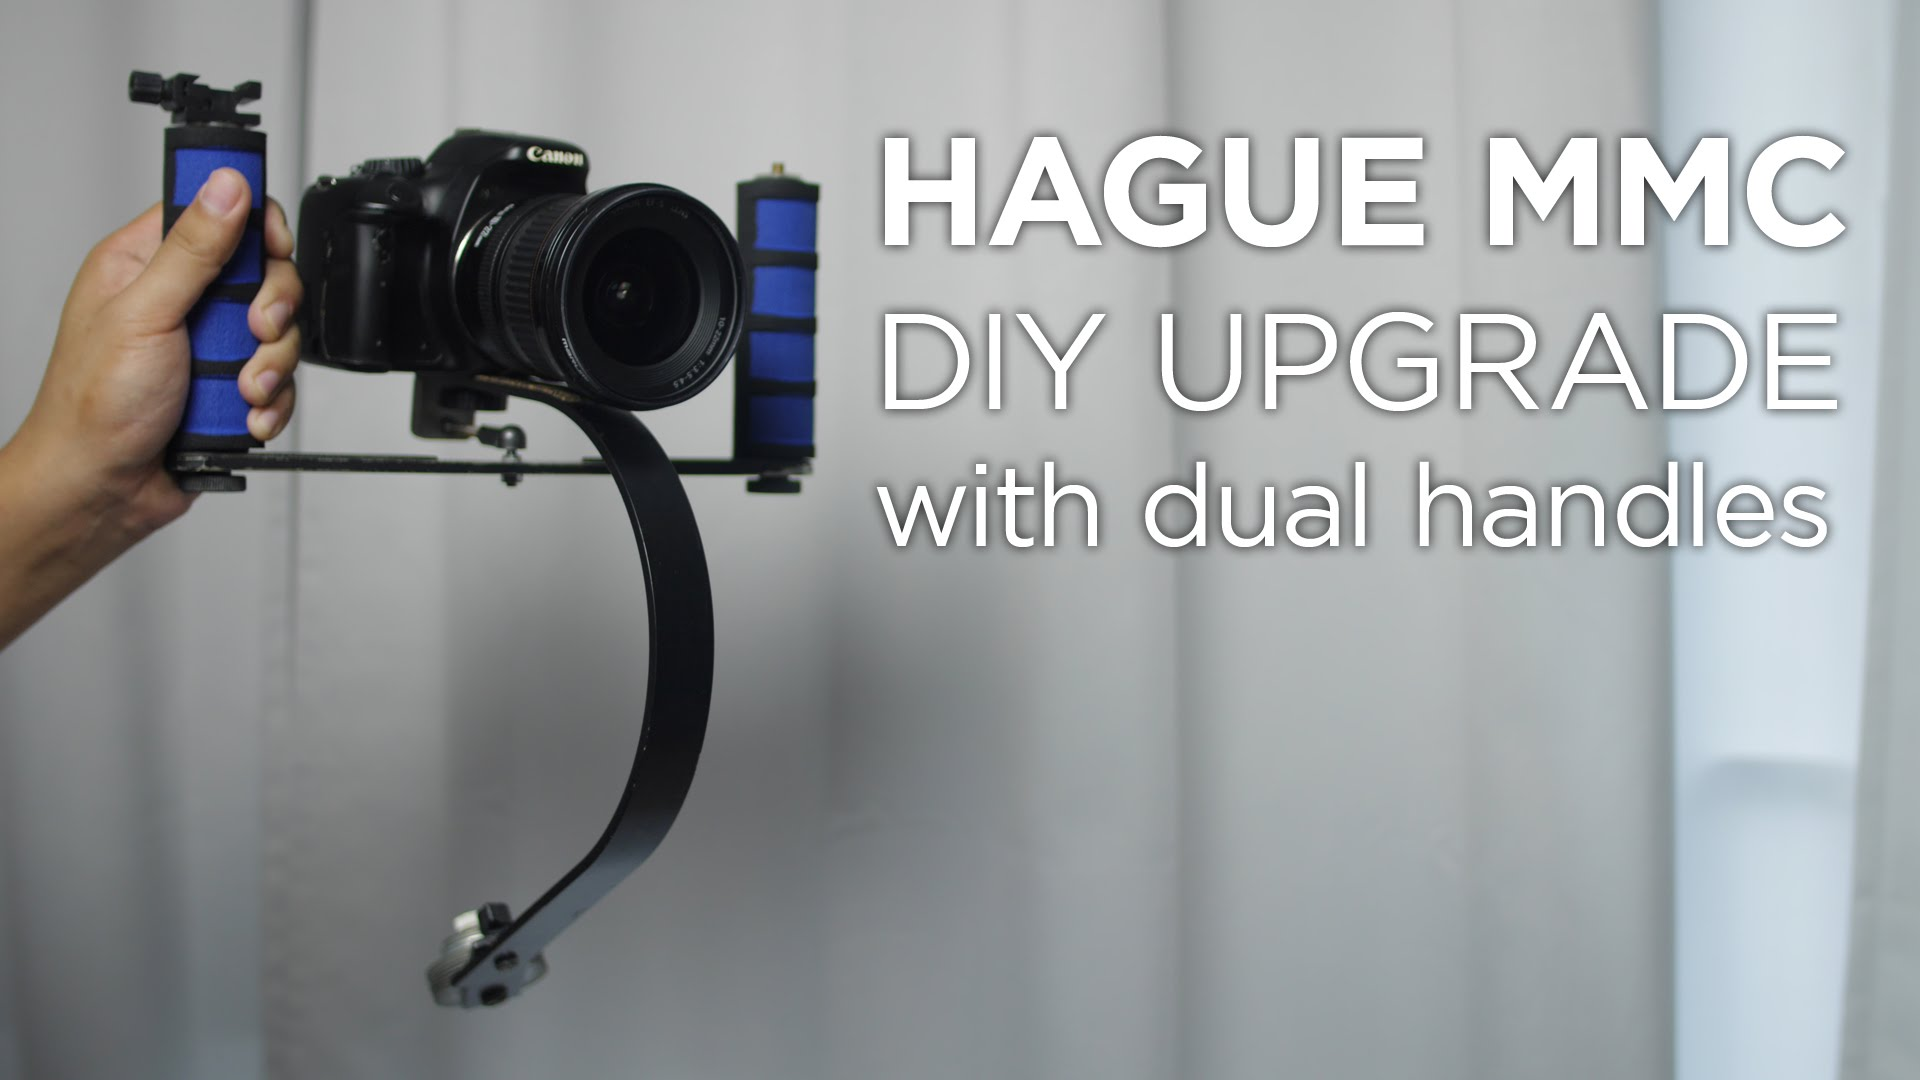 Hague MMC DIY Upgrade